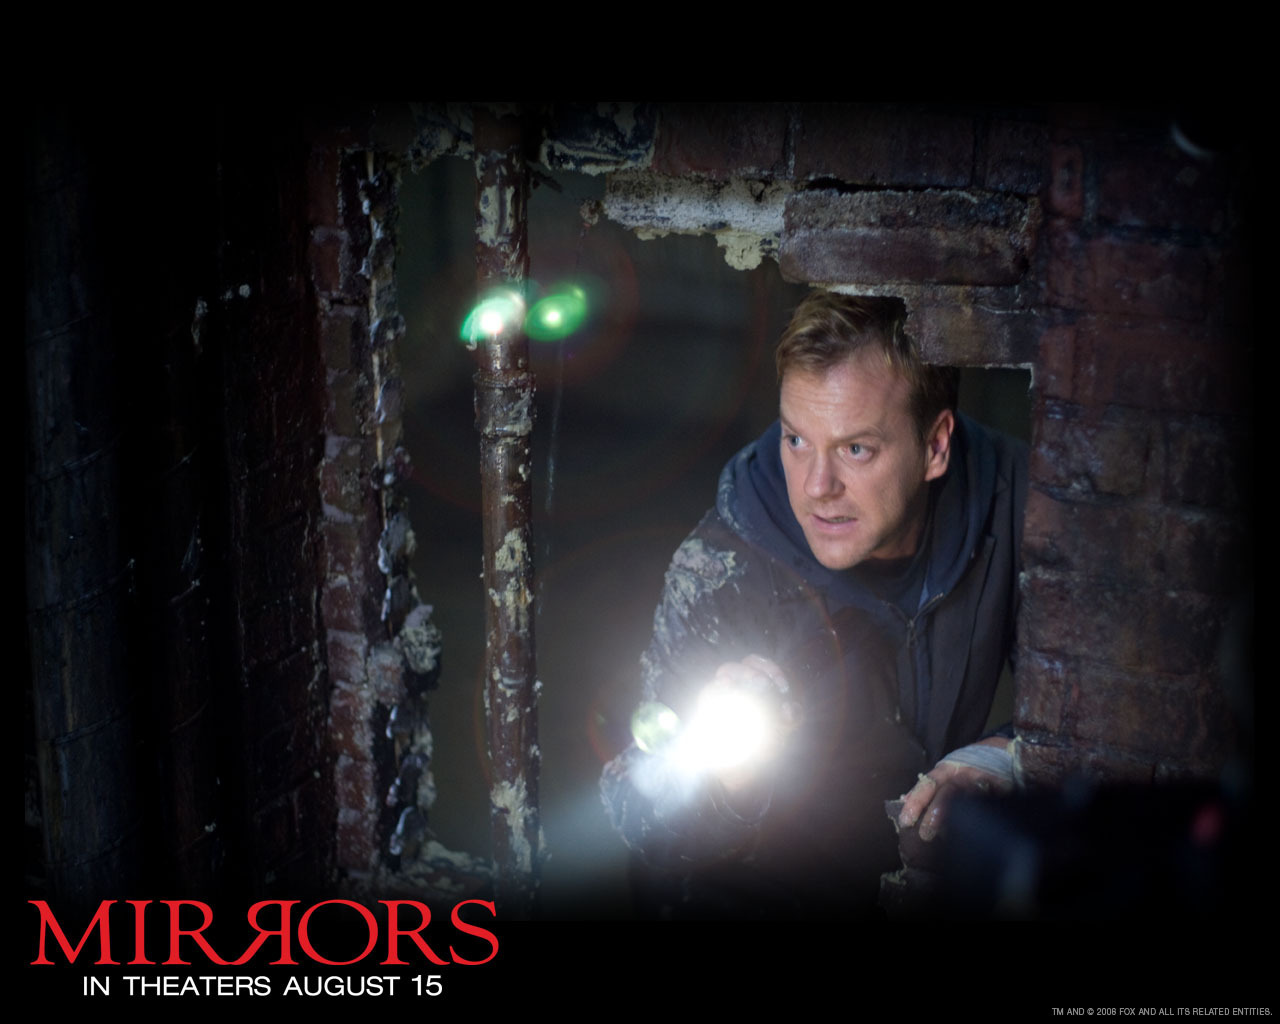 mirrors horror movies wallpaper 7085477 fanpop ForMirror Horror Movie